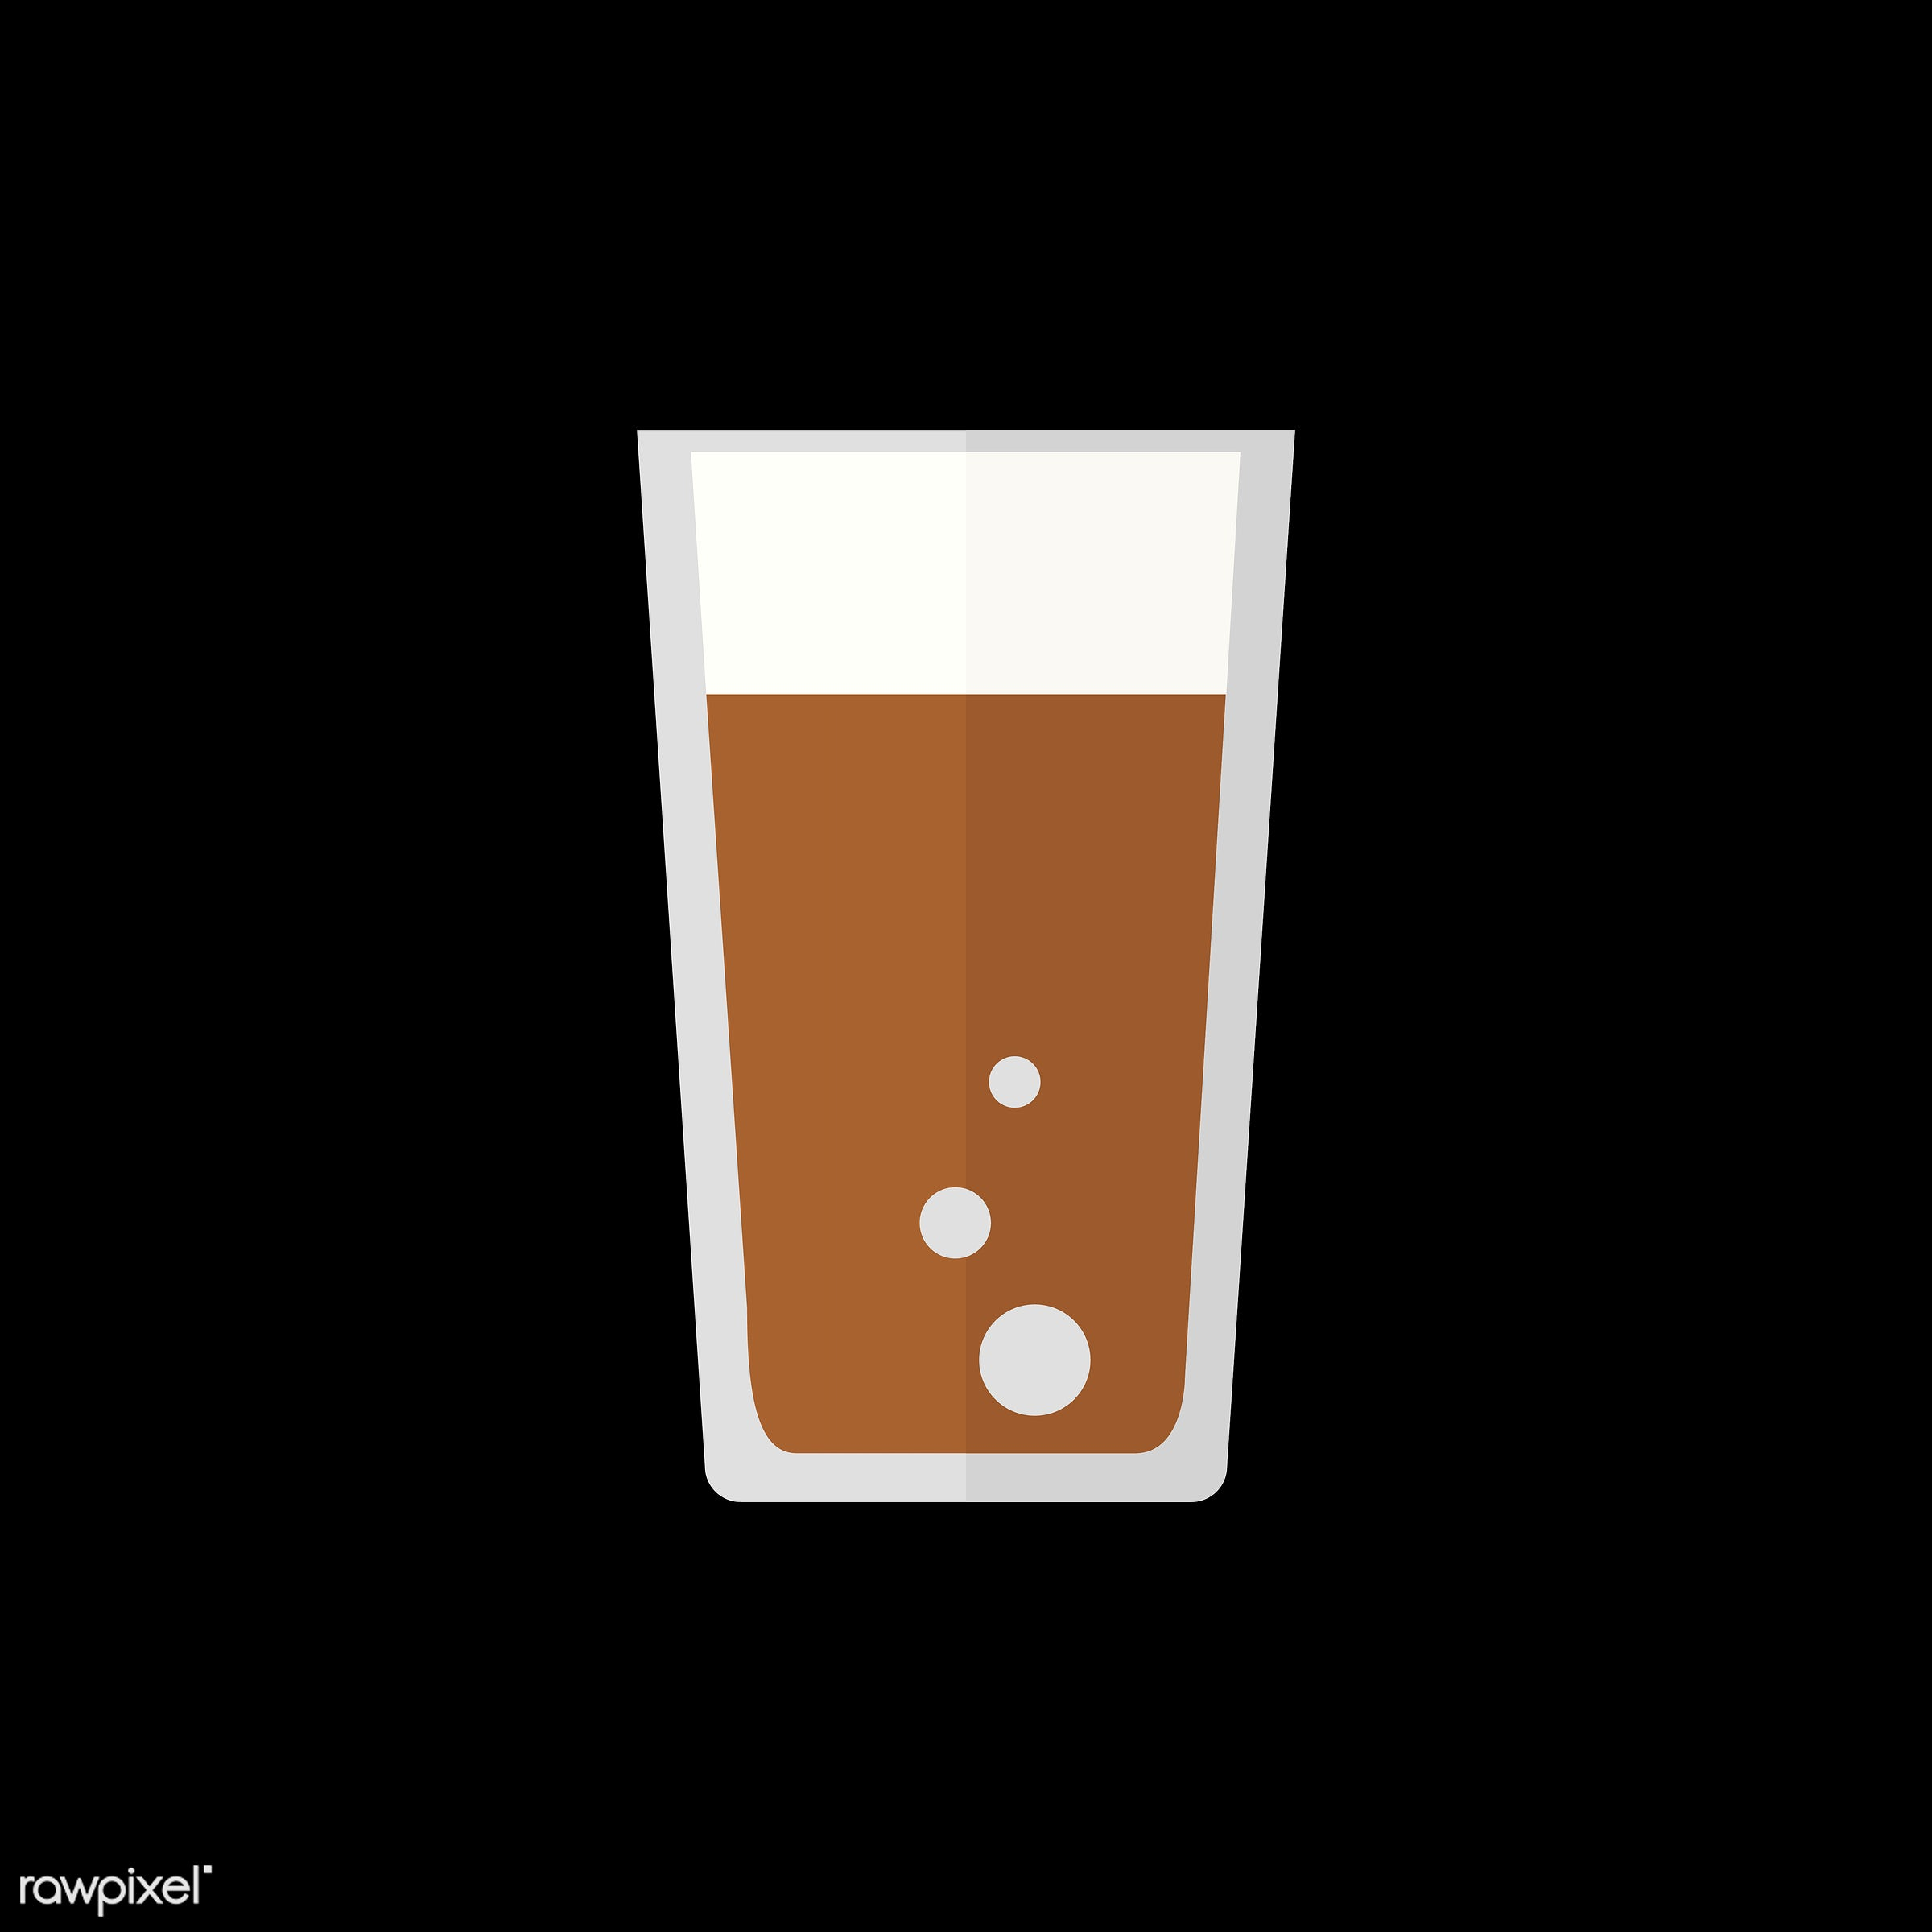 vector, graphic, illustration, icon, symbol, colorful, cute, drink, beverage, water, cola, brown